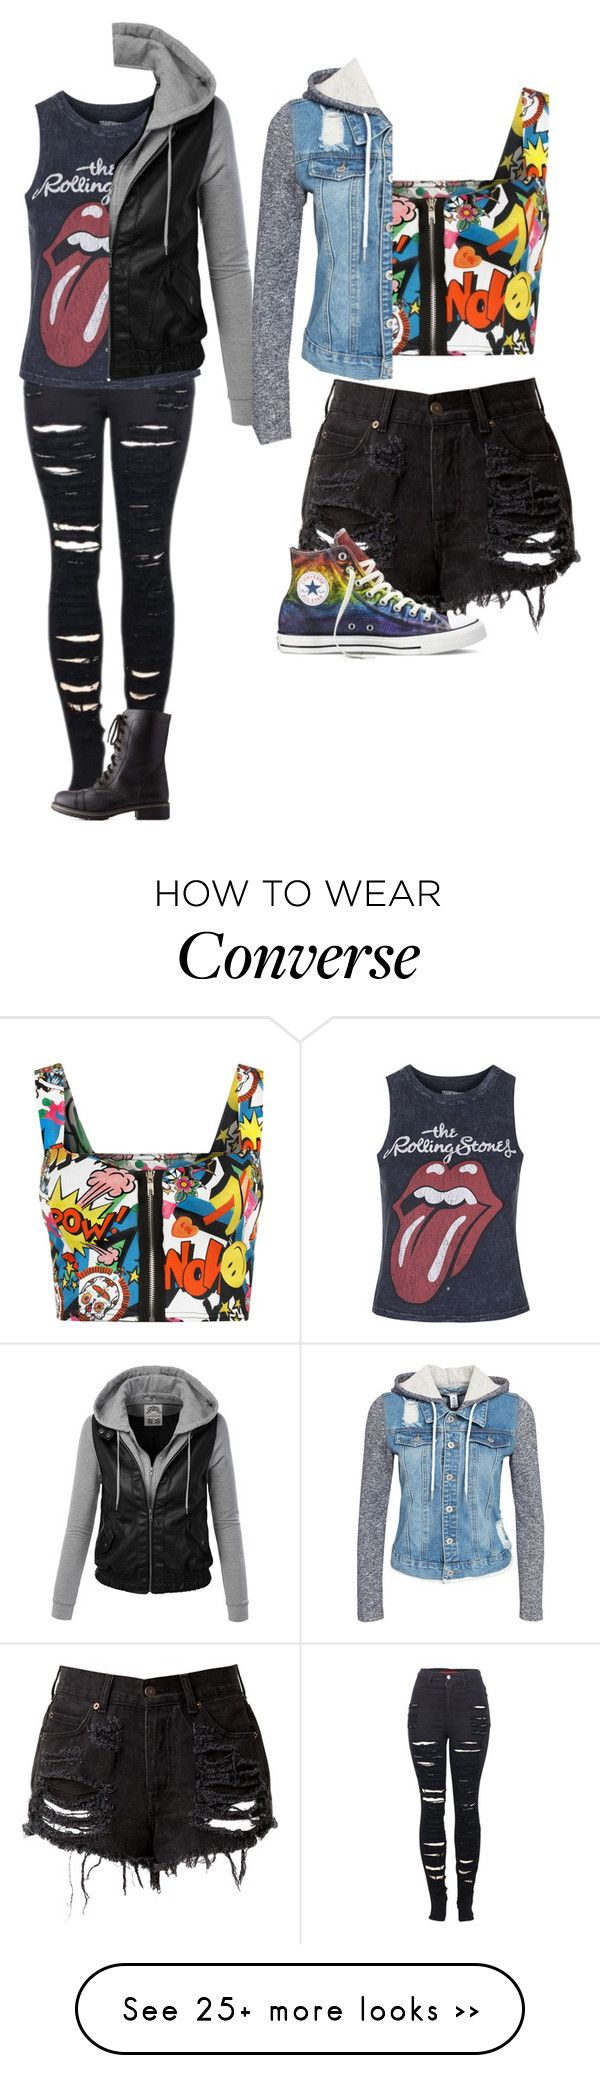 """Untitled #1184"" by kayla3n on Polyvore featuring 2LUV, Topshop, WearAll, Charlotte Russe, Converse and NLY Trend"